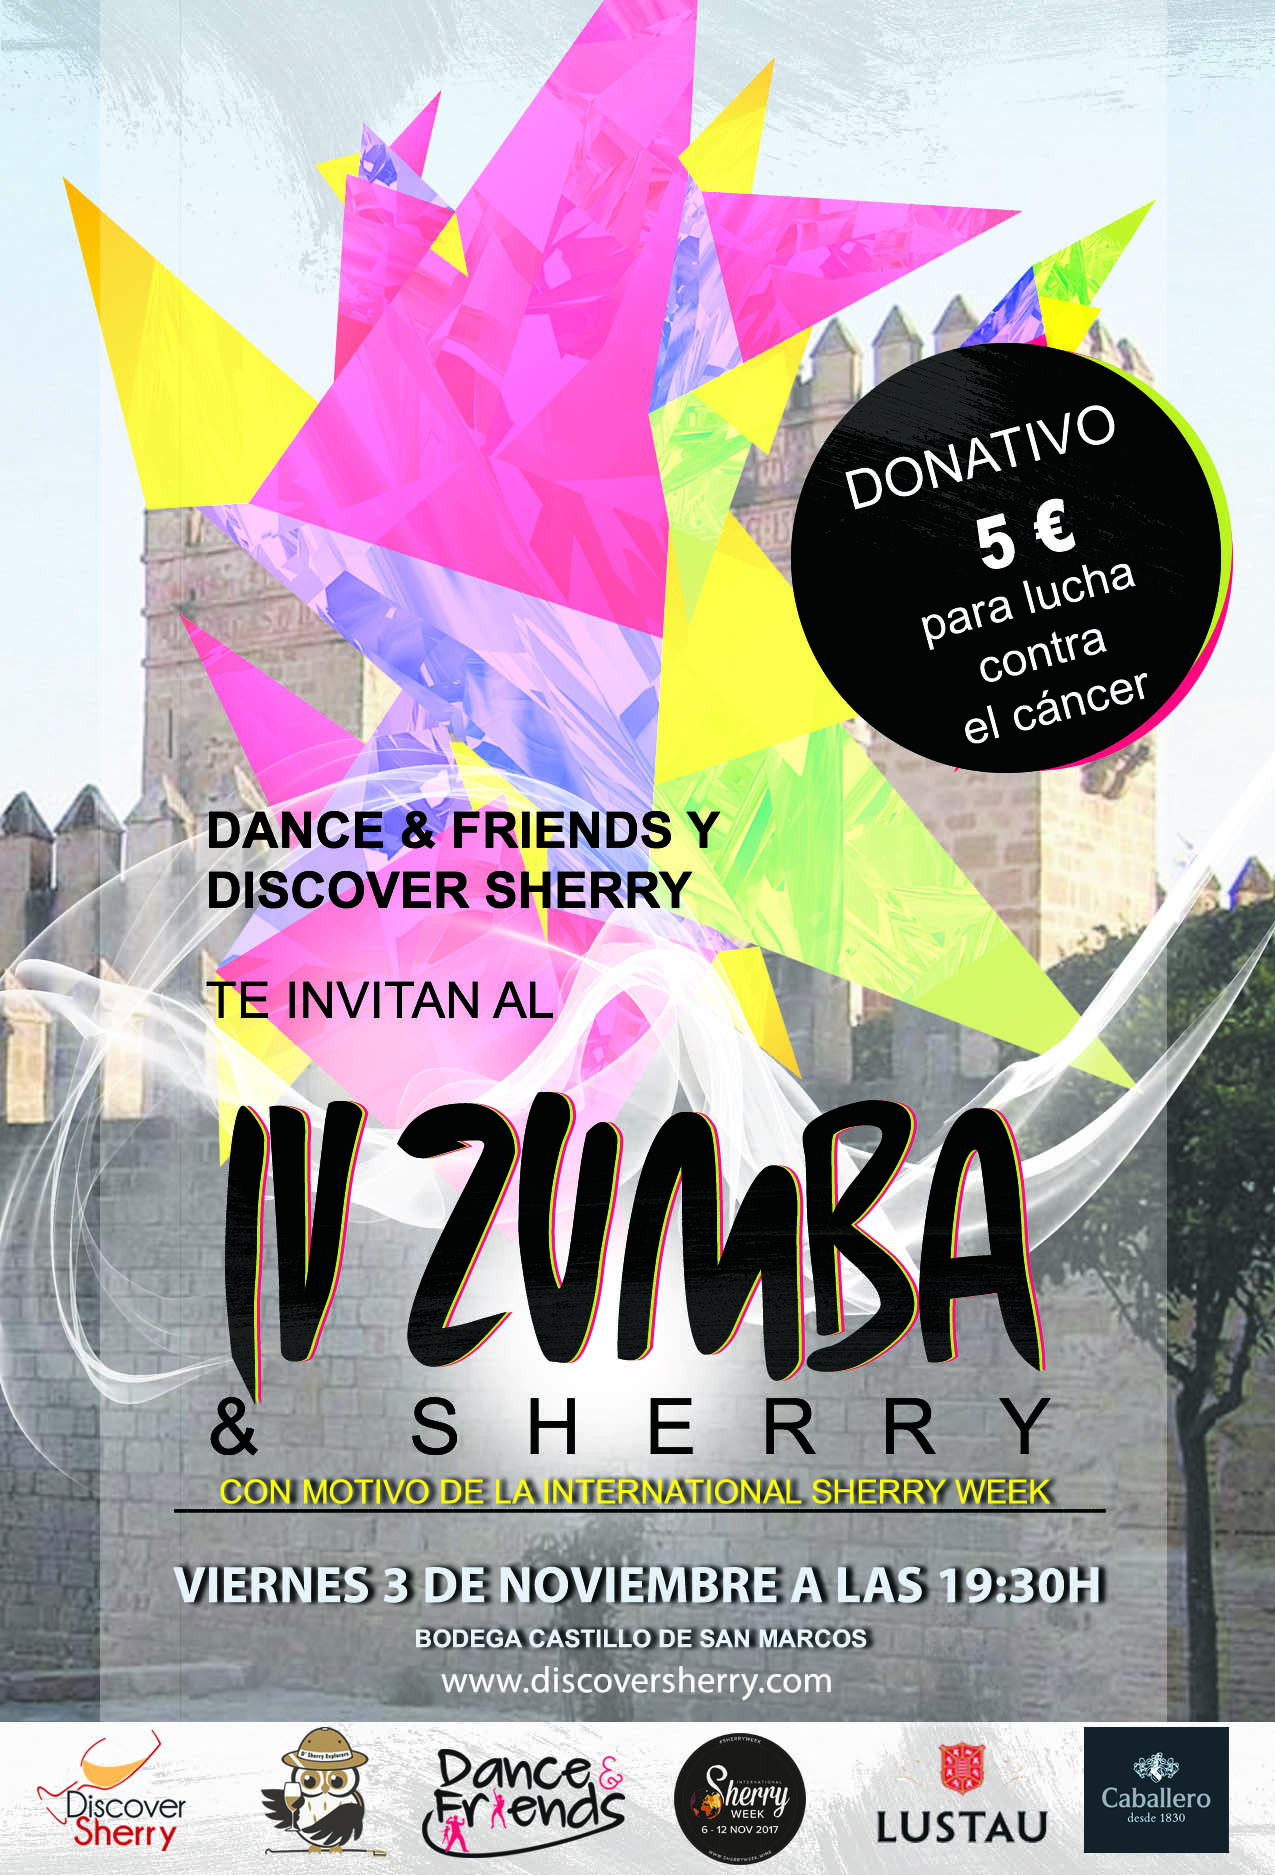 La International Sherry Week comenzará con ZUMBA and SHERRY/ International Sherry Week will start out with ZUMBA andSHERRY